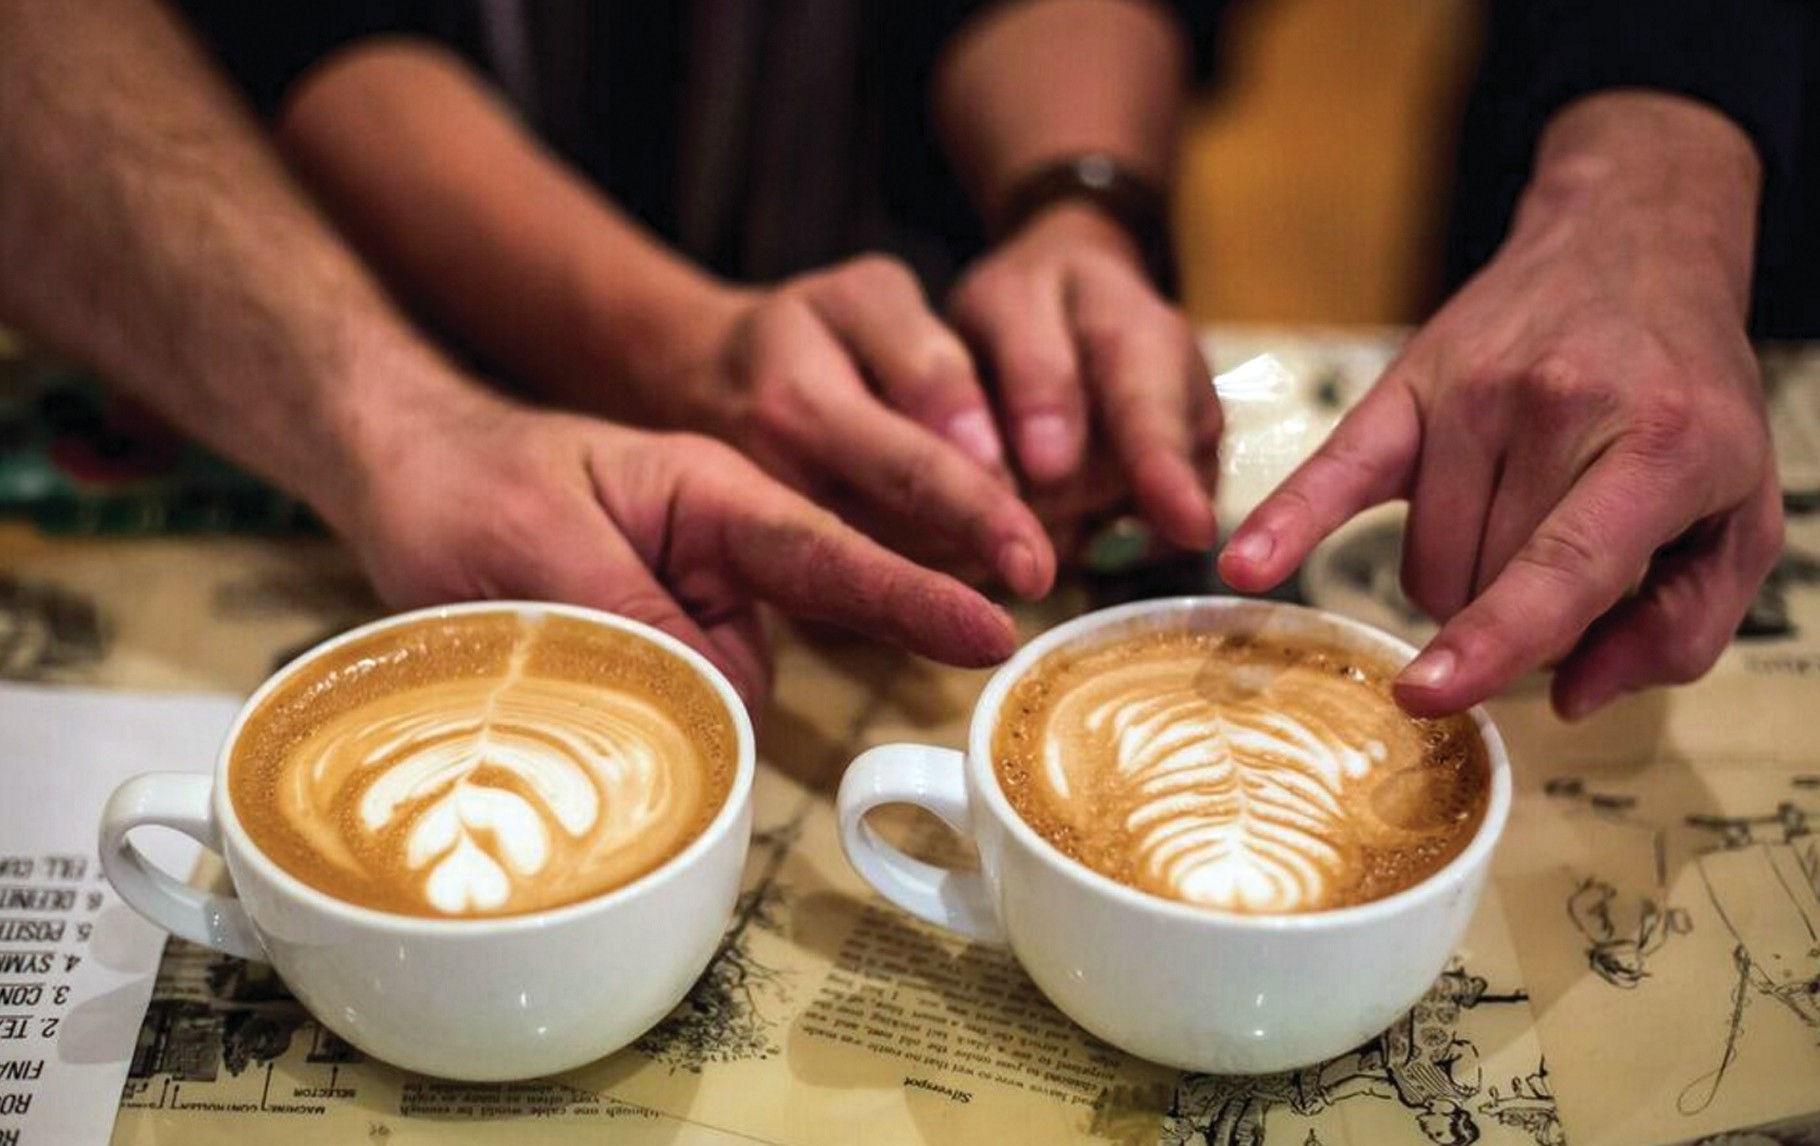 The judges choose Bard Coffee barista Kelsey Sirois' cup as the winner of the Latte Art Throwdown at Elements in Biddeford Thursday night.